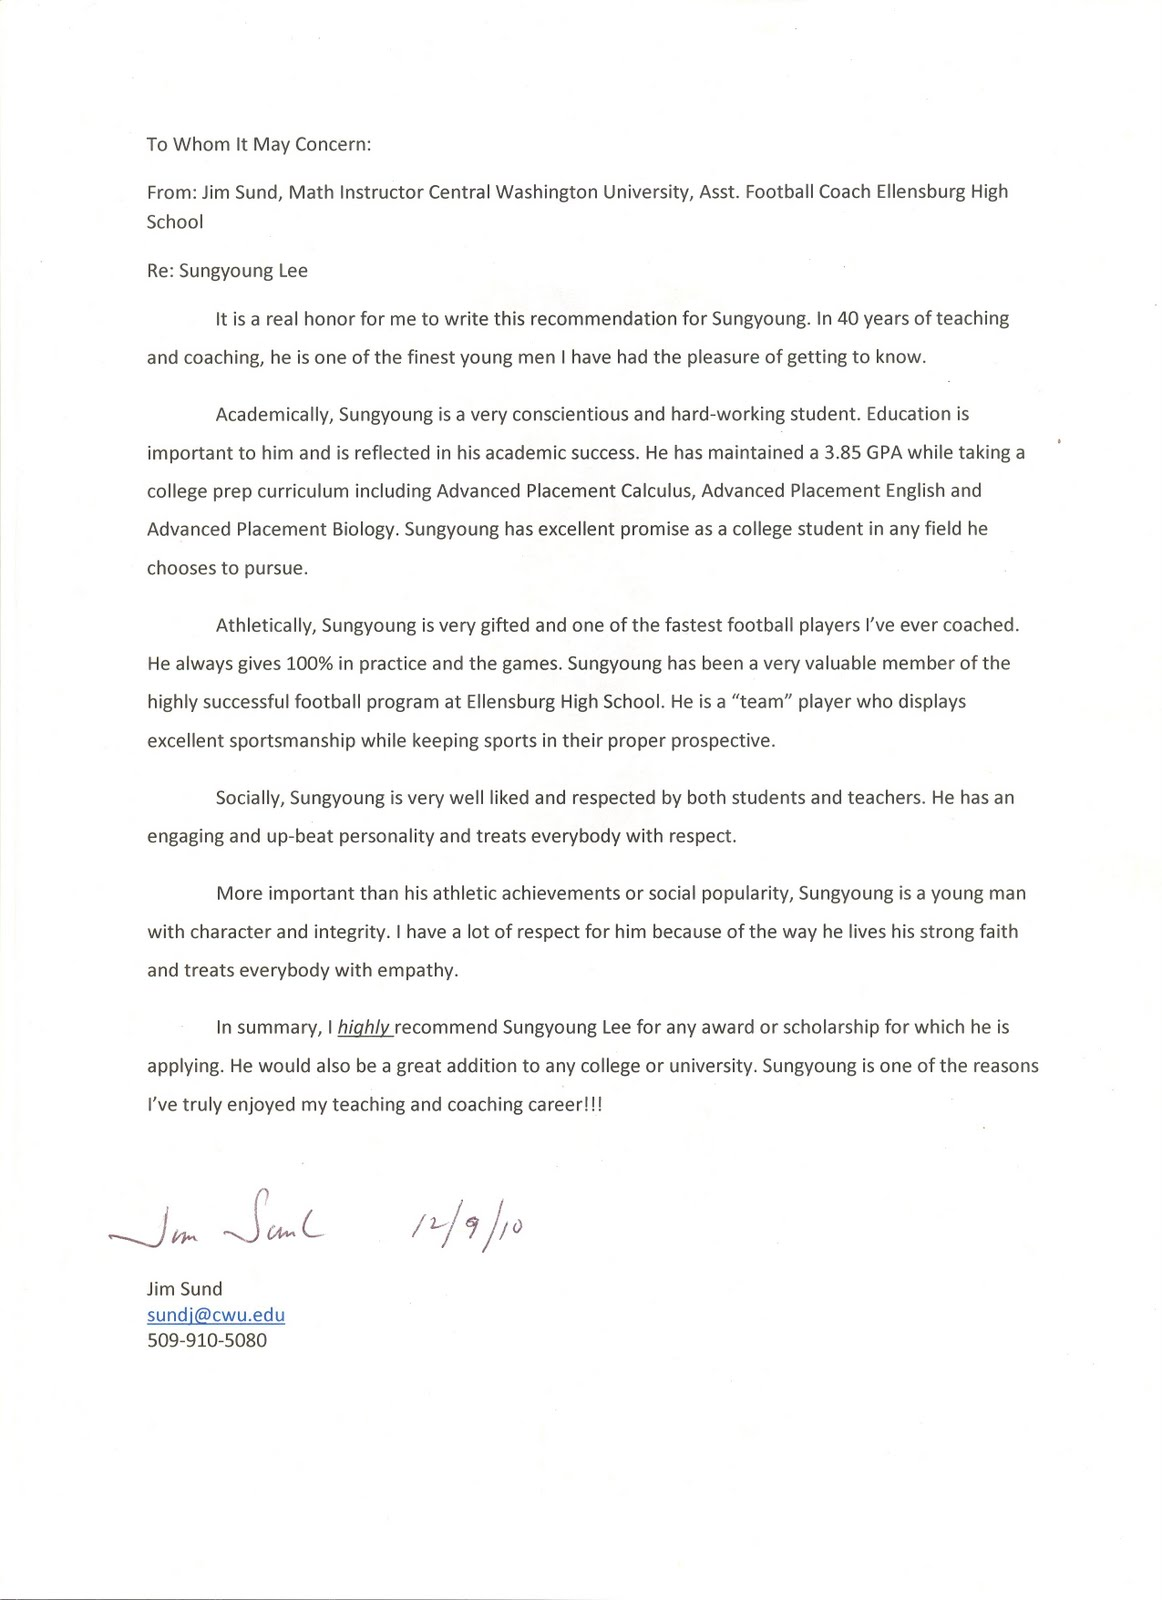 Eagle Scout Recommendation Letter Sample http://sungyounglee3.blogspot ...